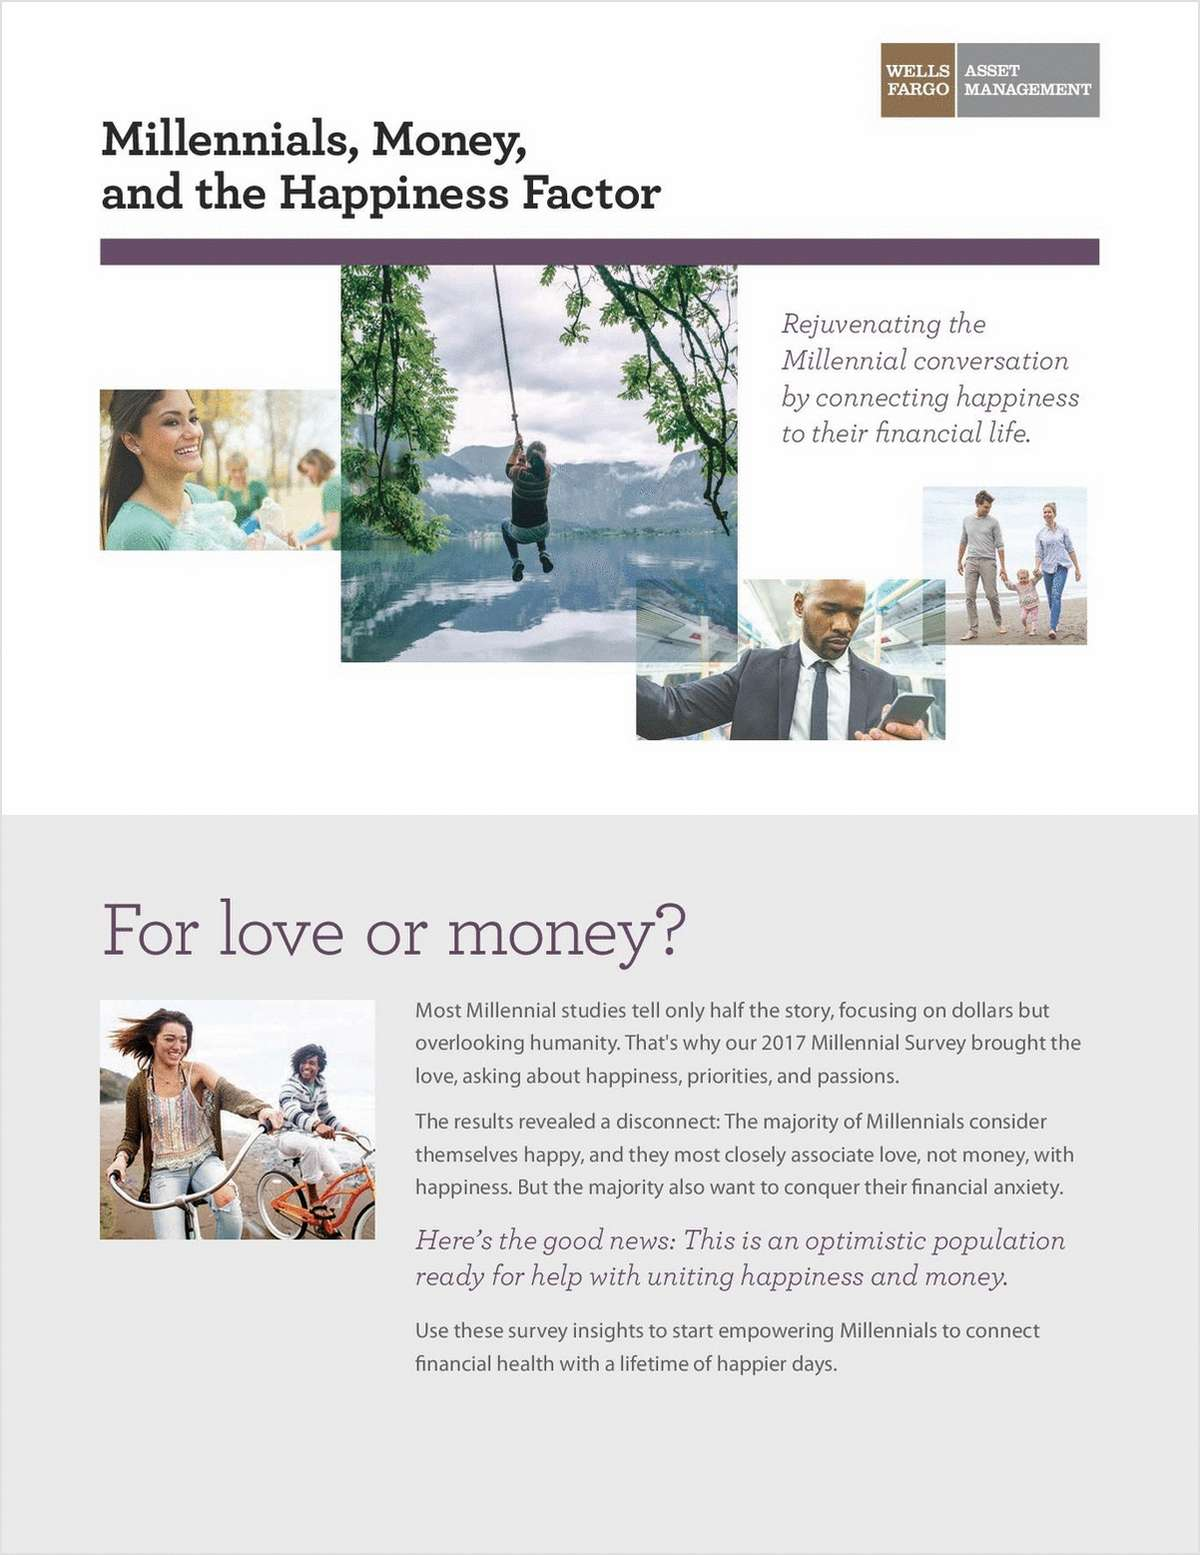 Millennials, Money, and the Happiness Factor